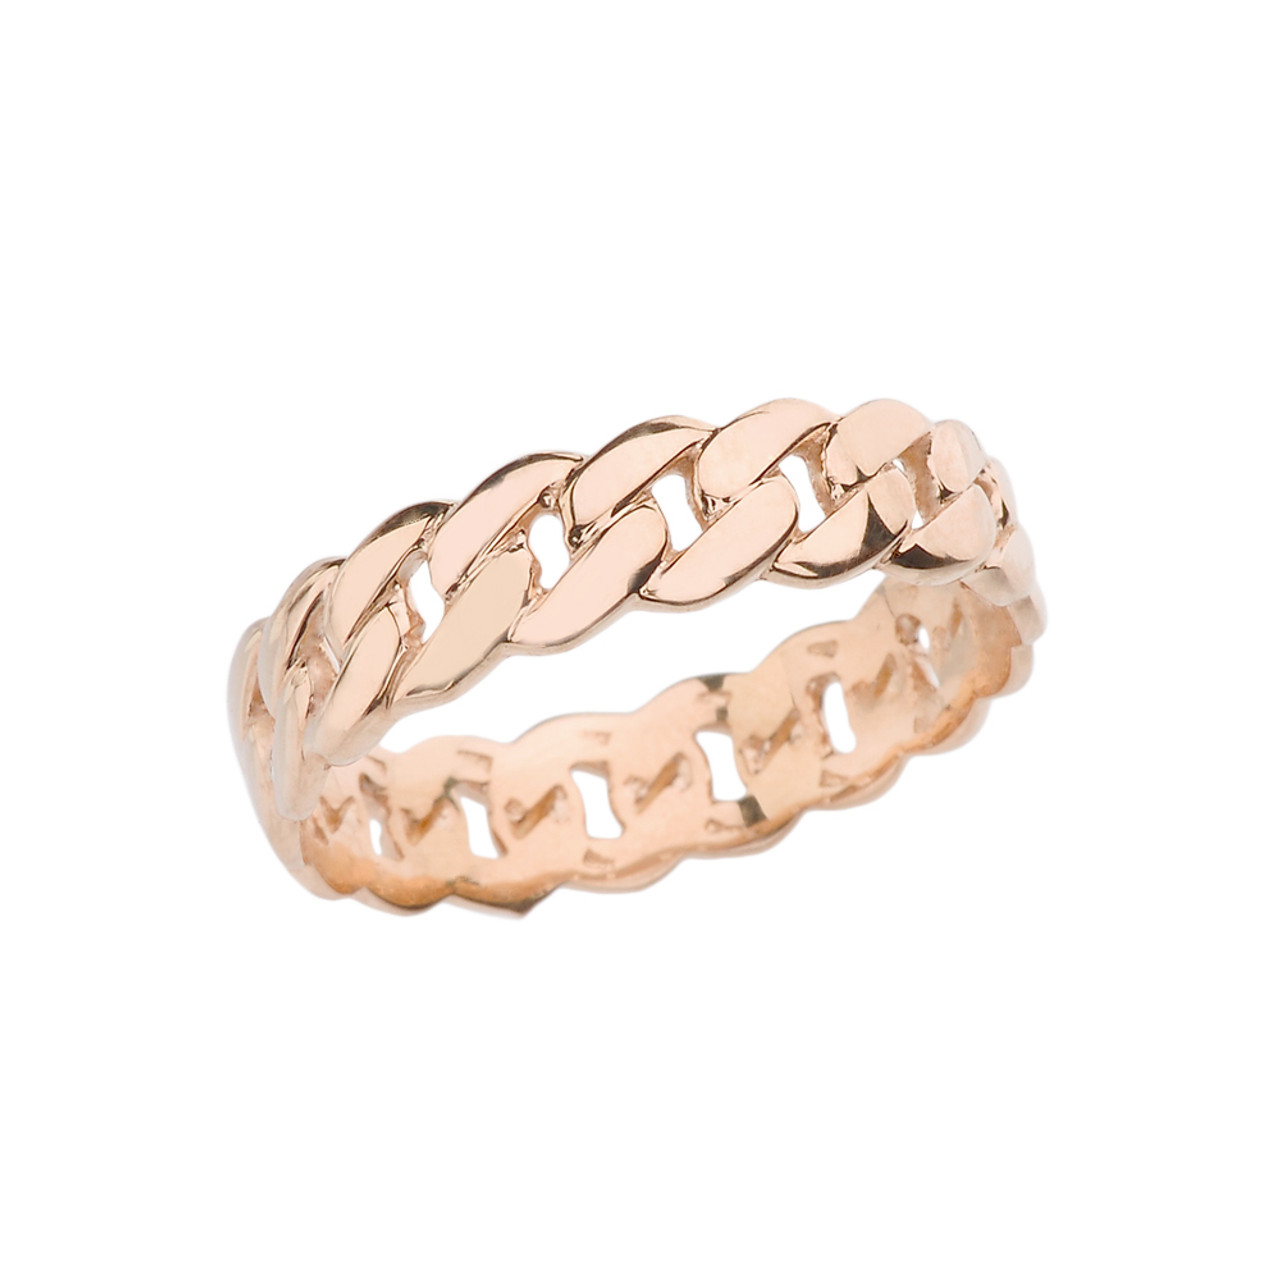 liven bands gold product preorder nsalivenrosegolddiaeternityband honeycomb and rose eternity diamond band